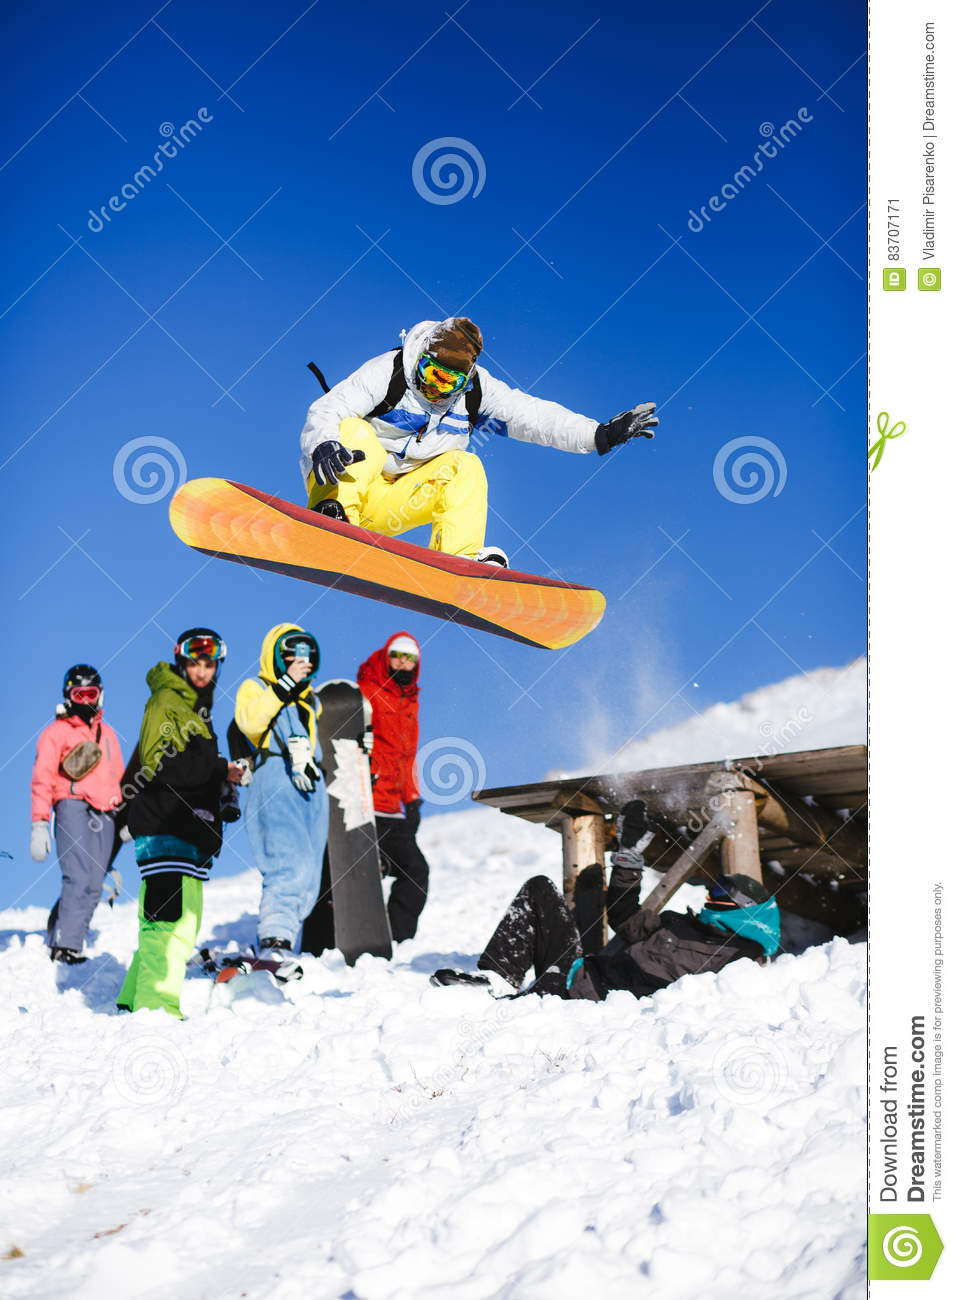 Jumping Snowboarder On Blue Sky Background Stock Photo